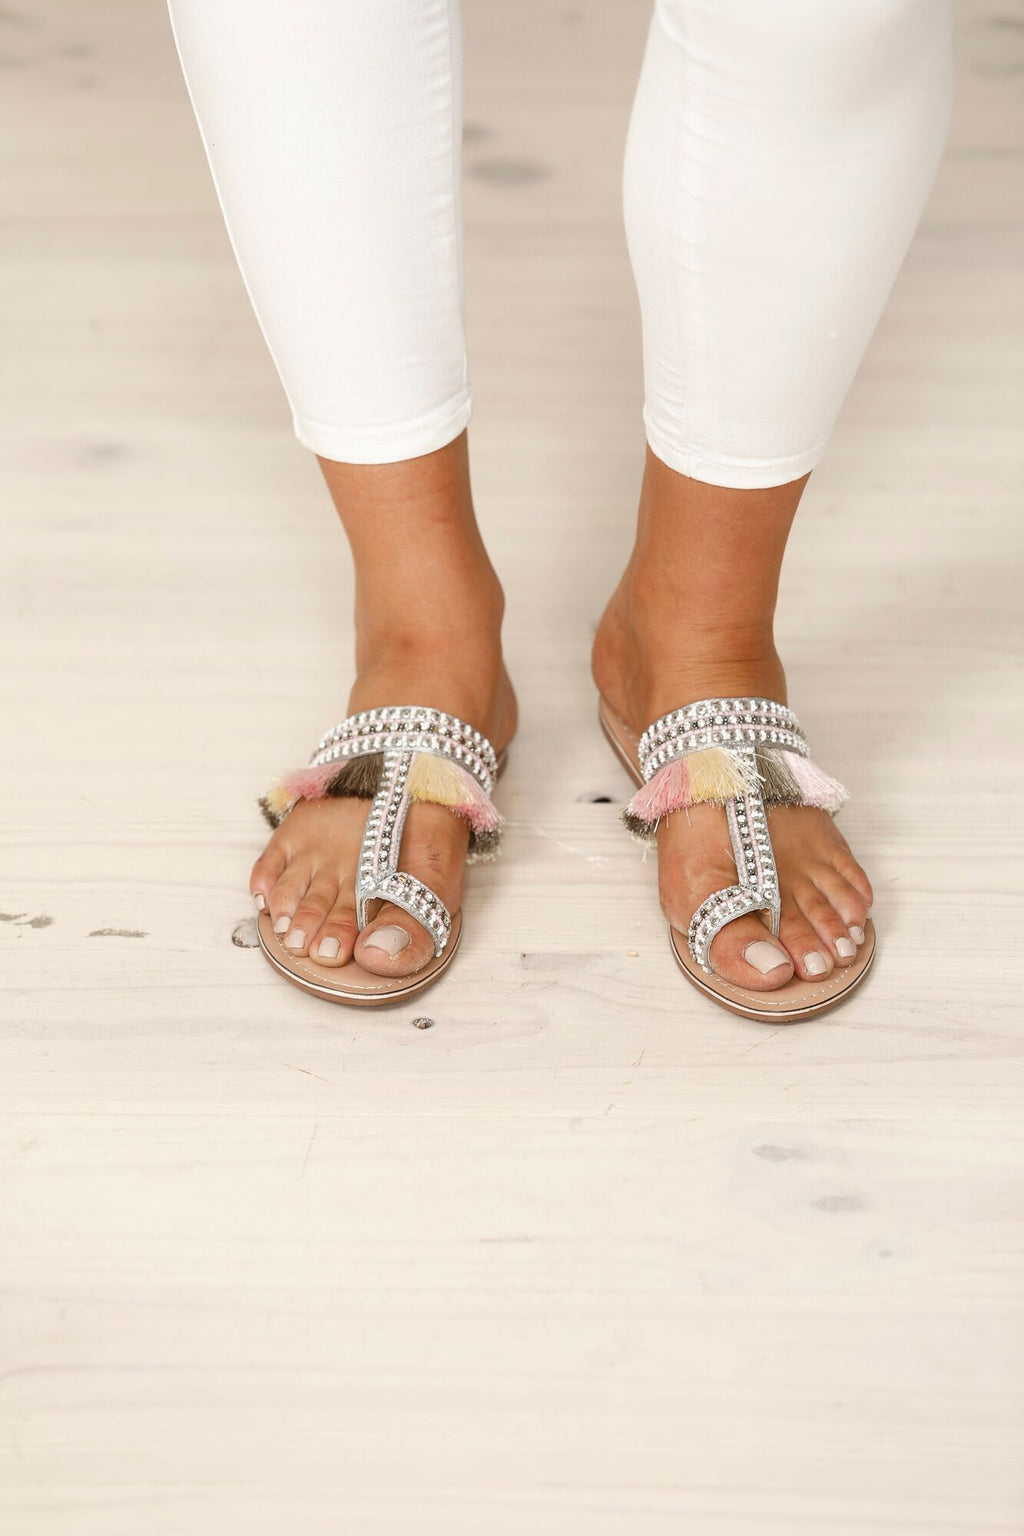 Aries Sandal - Sanchaya Designs